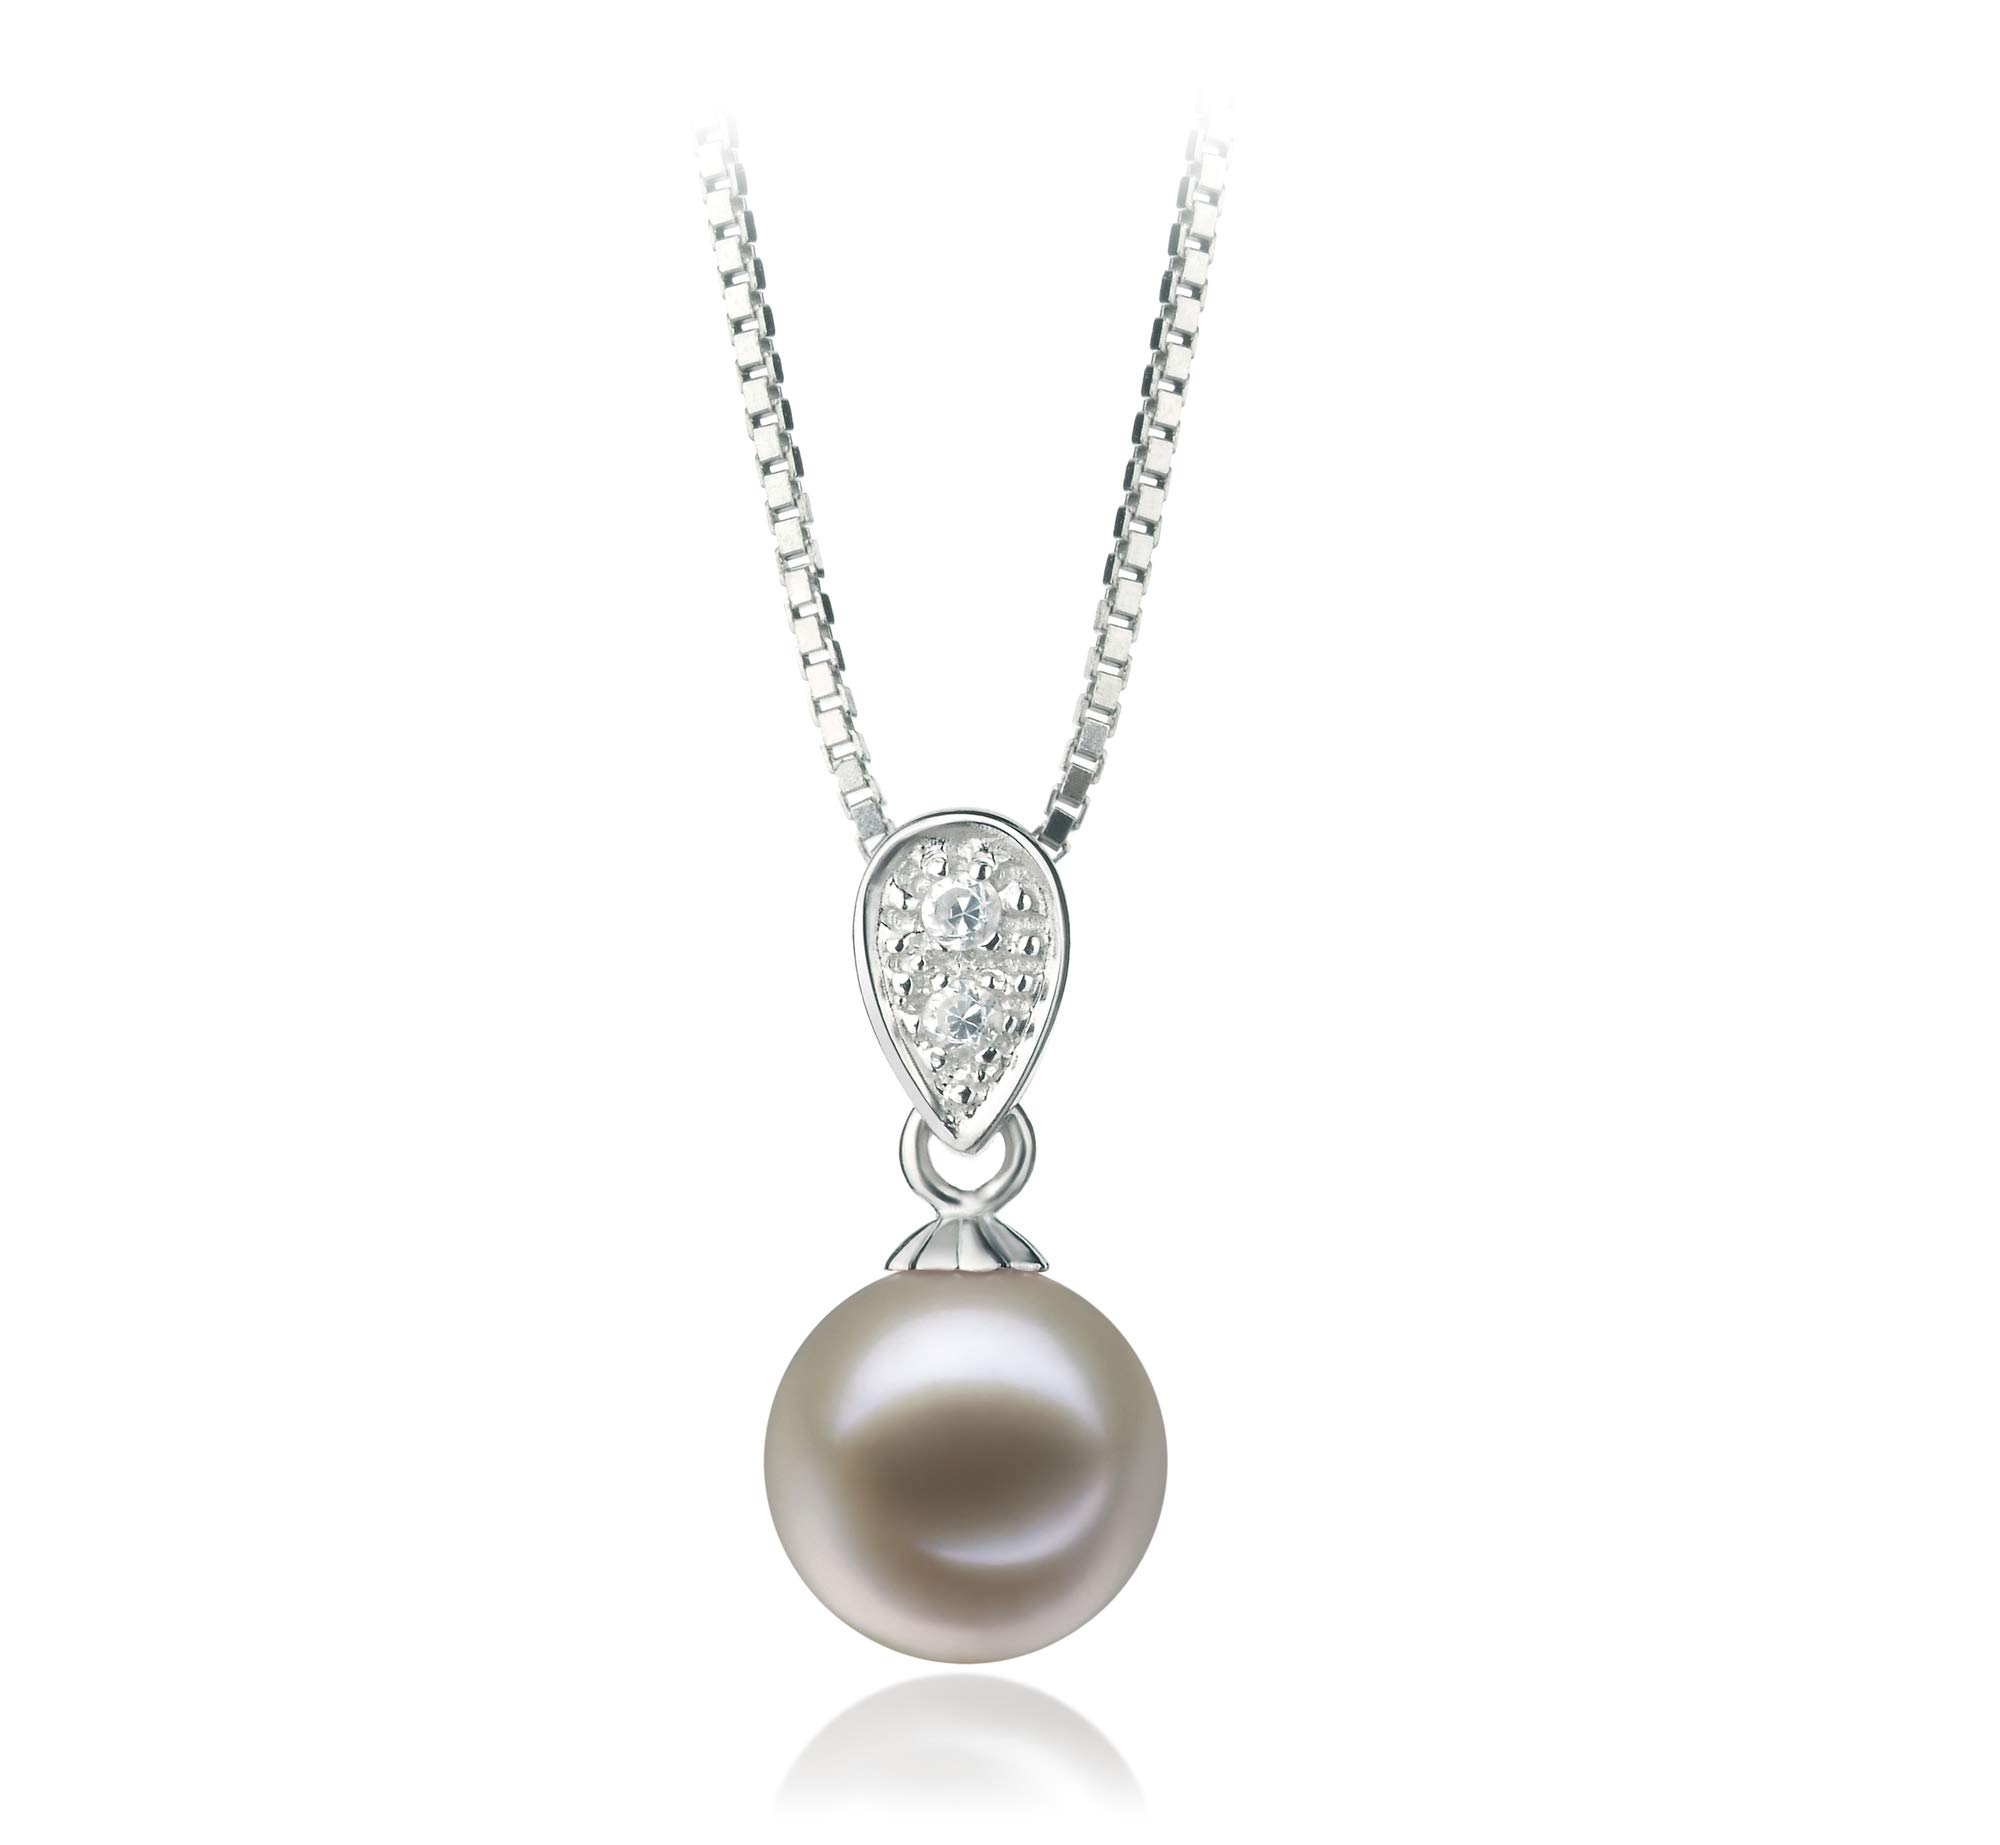 Daria White 7-8mm AAAA Quality Freshwater 925 Sterling Silver Cultured Pearl Pendant For Women by PearlsOnly